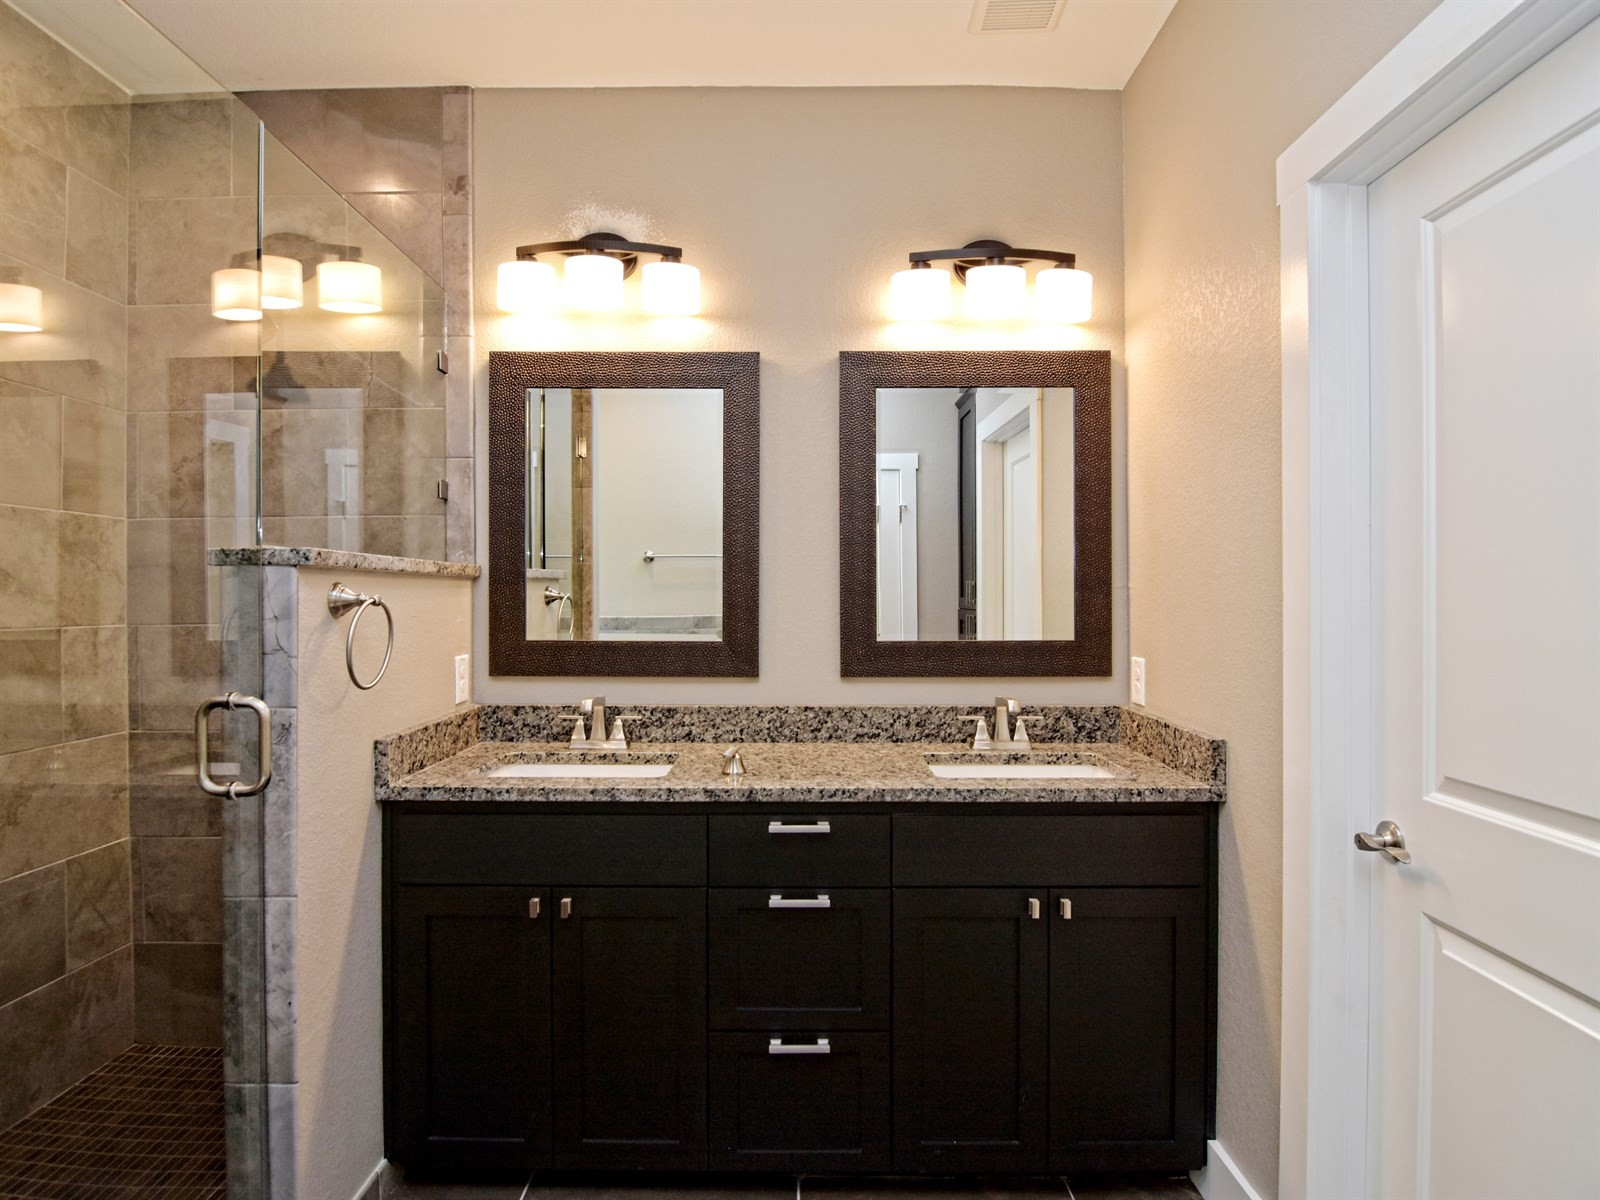 017_Master Bathroom 2.jpg